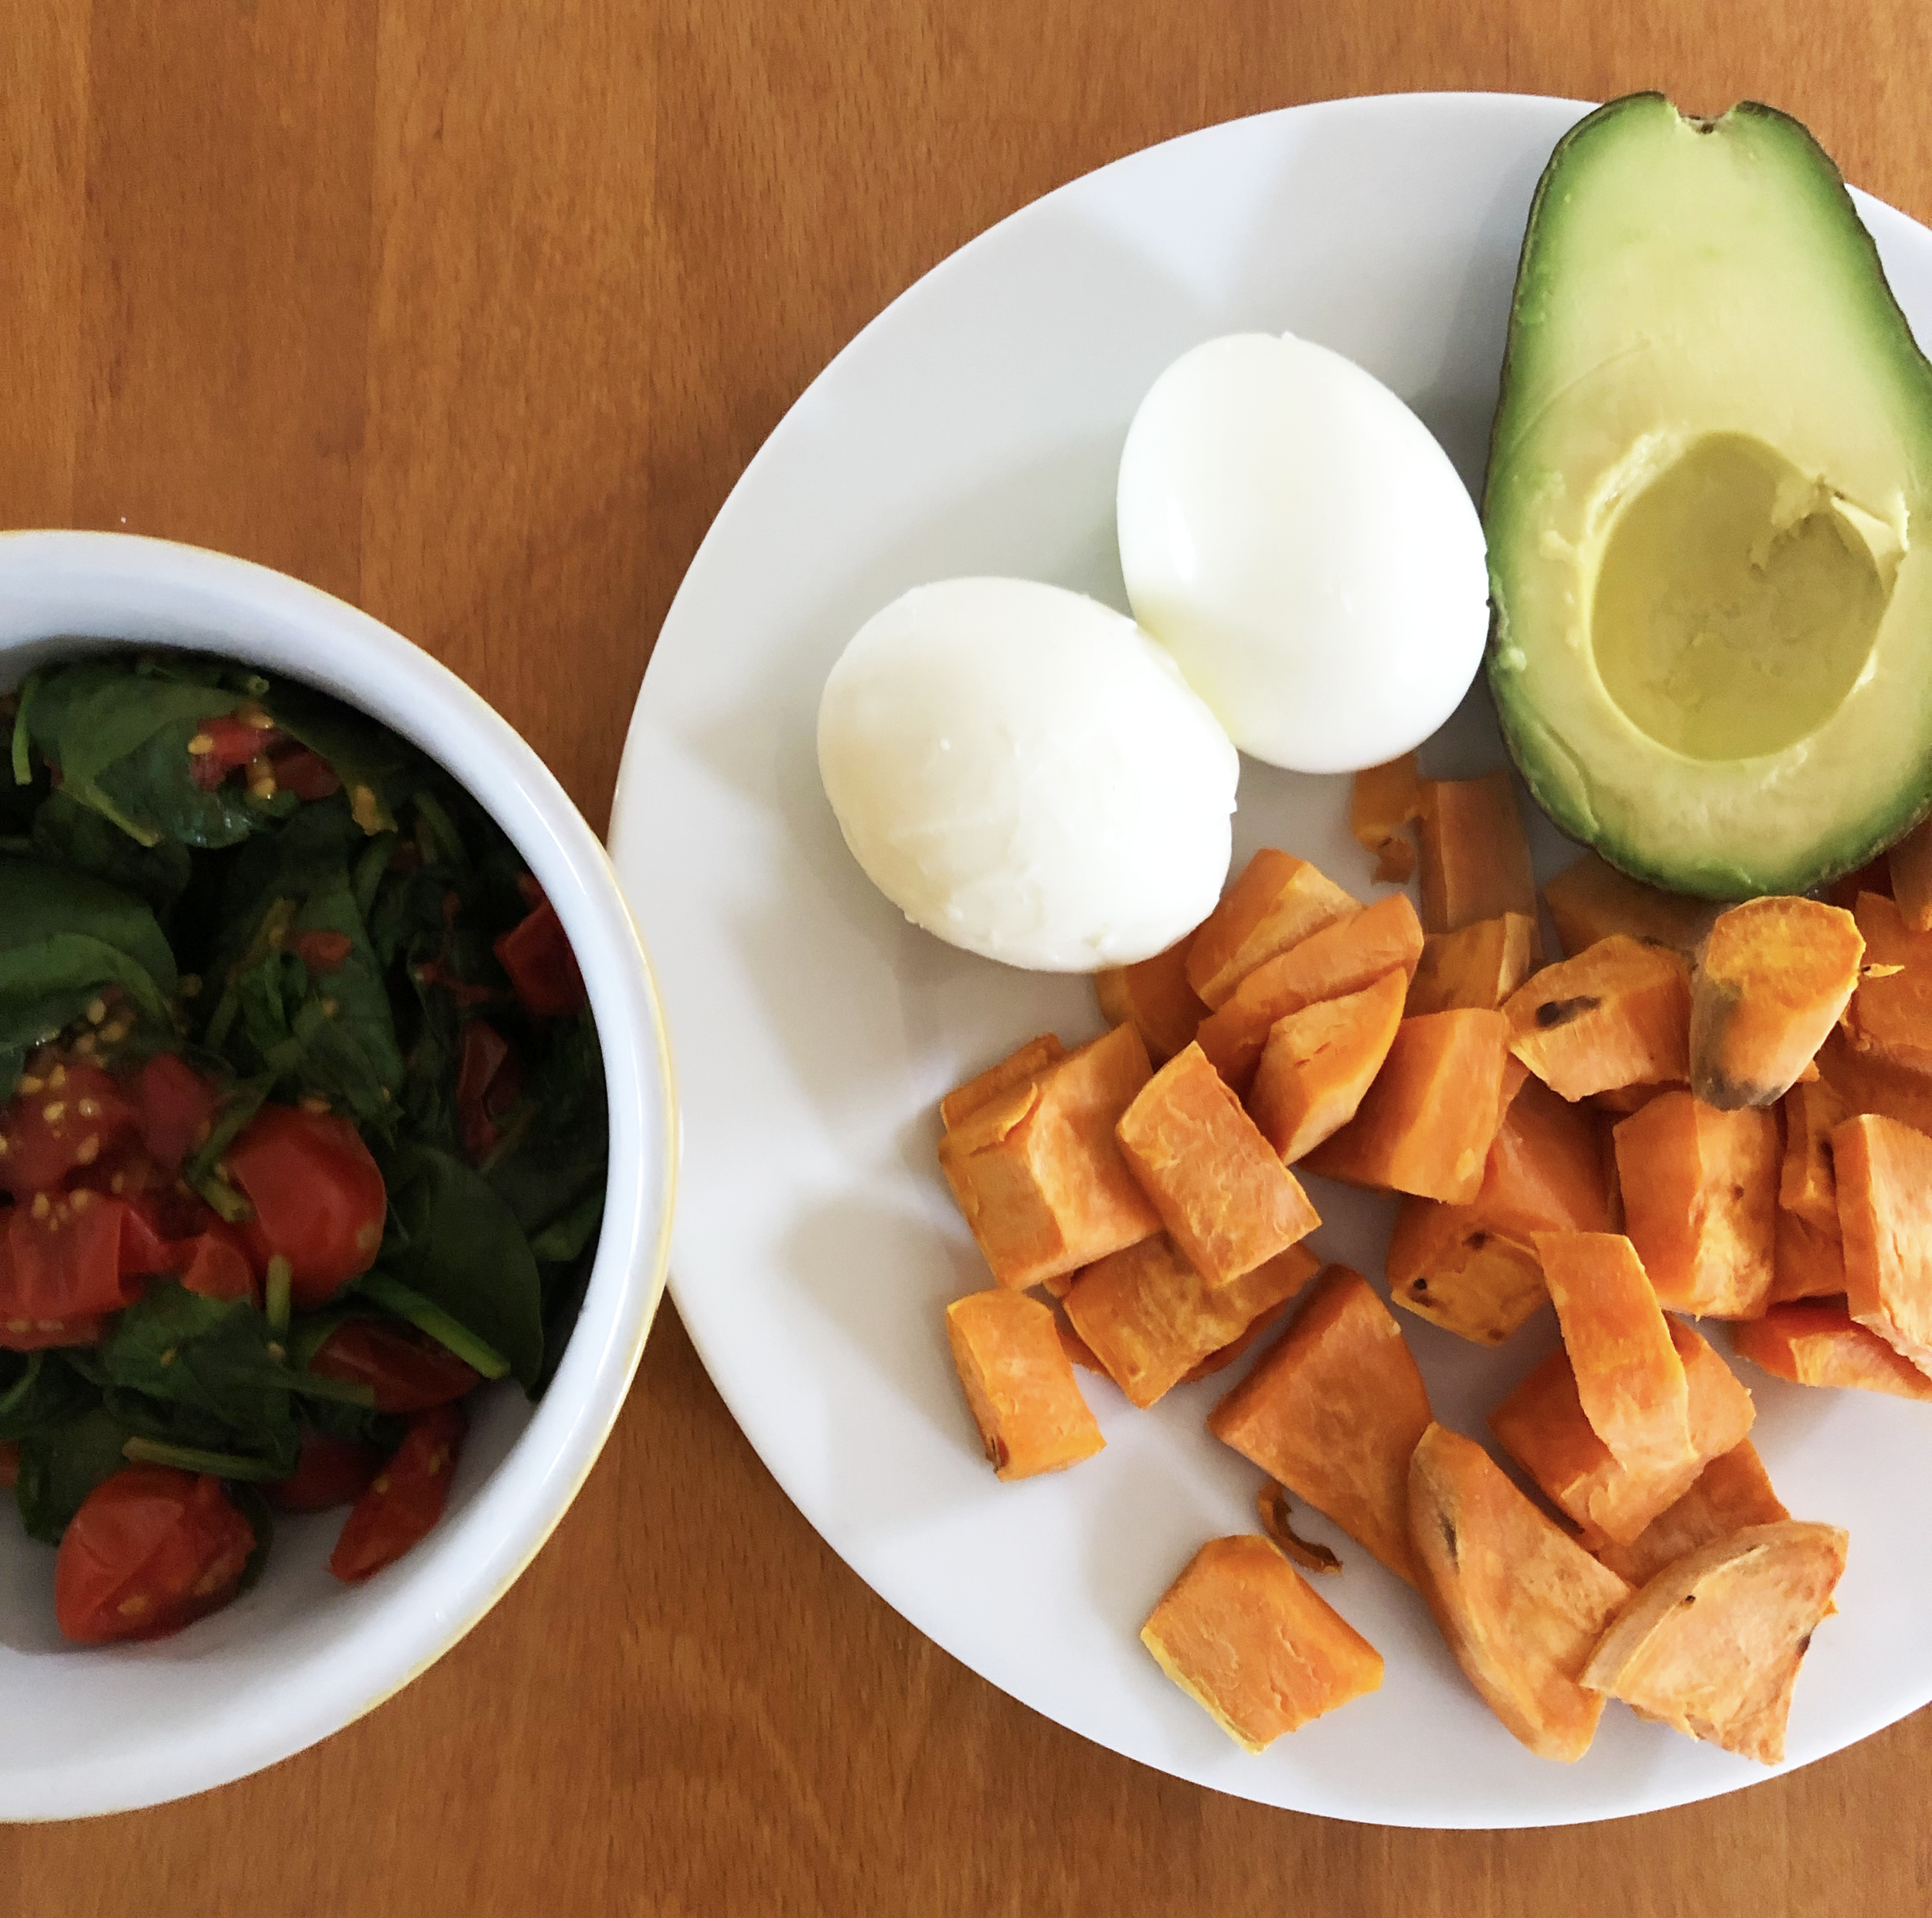 Lunch: Eggs, avocado, yam, spinach and cherry tomatoes - Hmm this is awkward I don't know what to say, just that my eggs look kinda weird and so does the whole spinach-tomato situation over there. I'm just gonna go now, see you tomorrow.